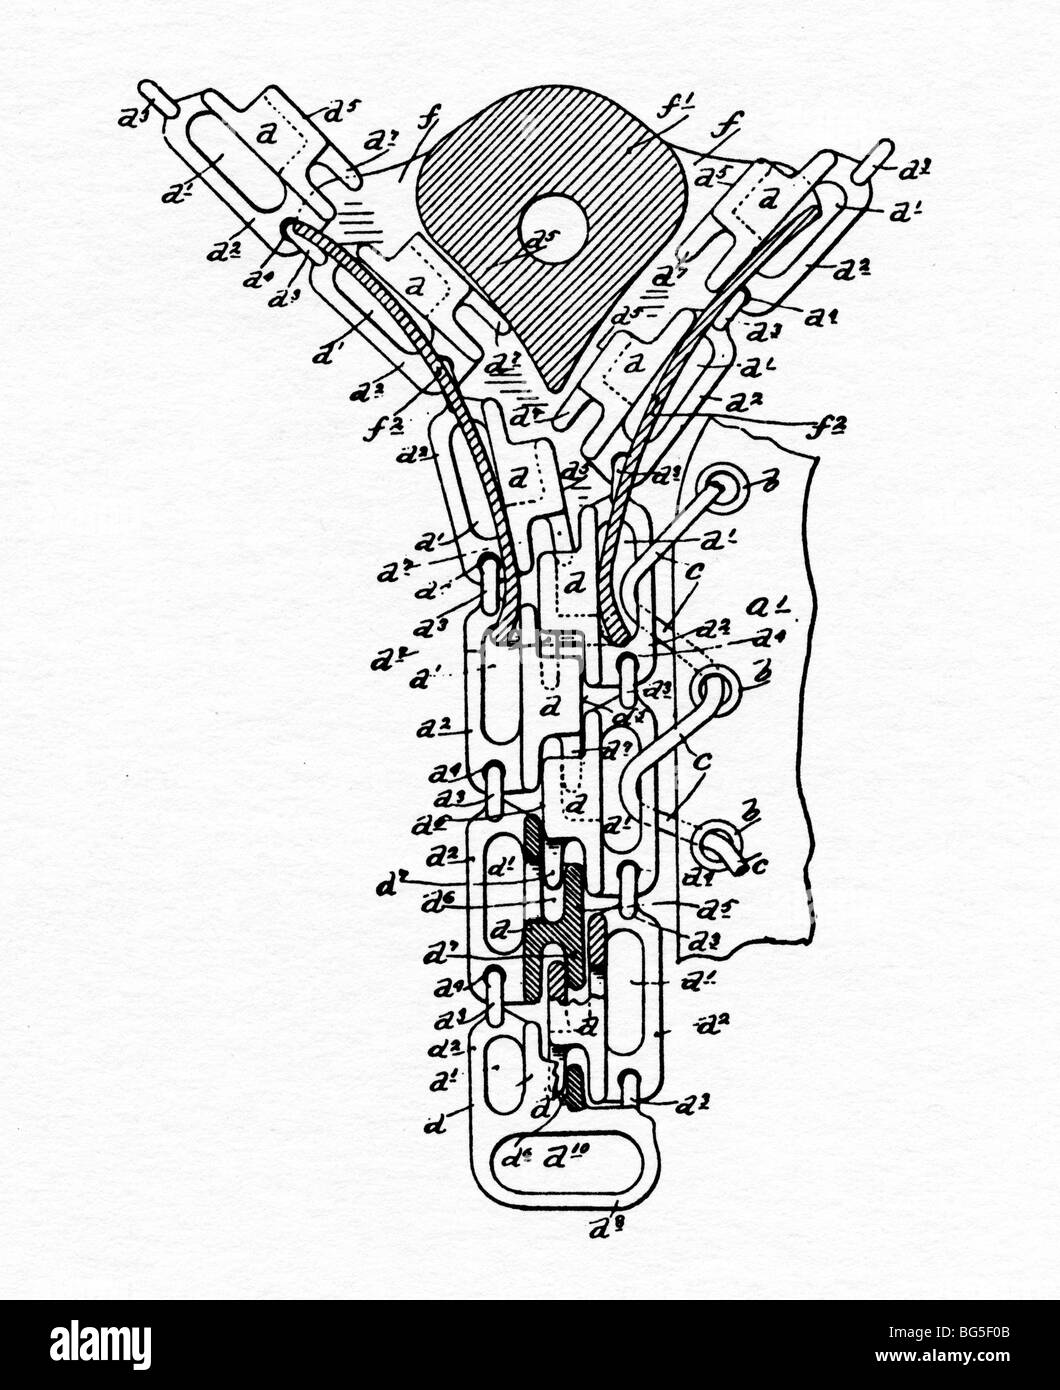 Whitcomb Judson, Zip, 1895 patent for a further refinement of his slide fastener, which developed into the zipper - Stock Image